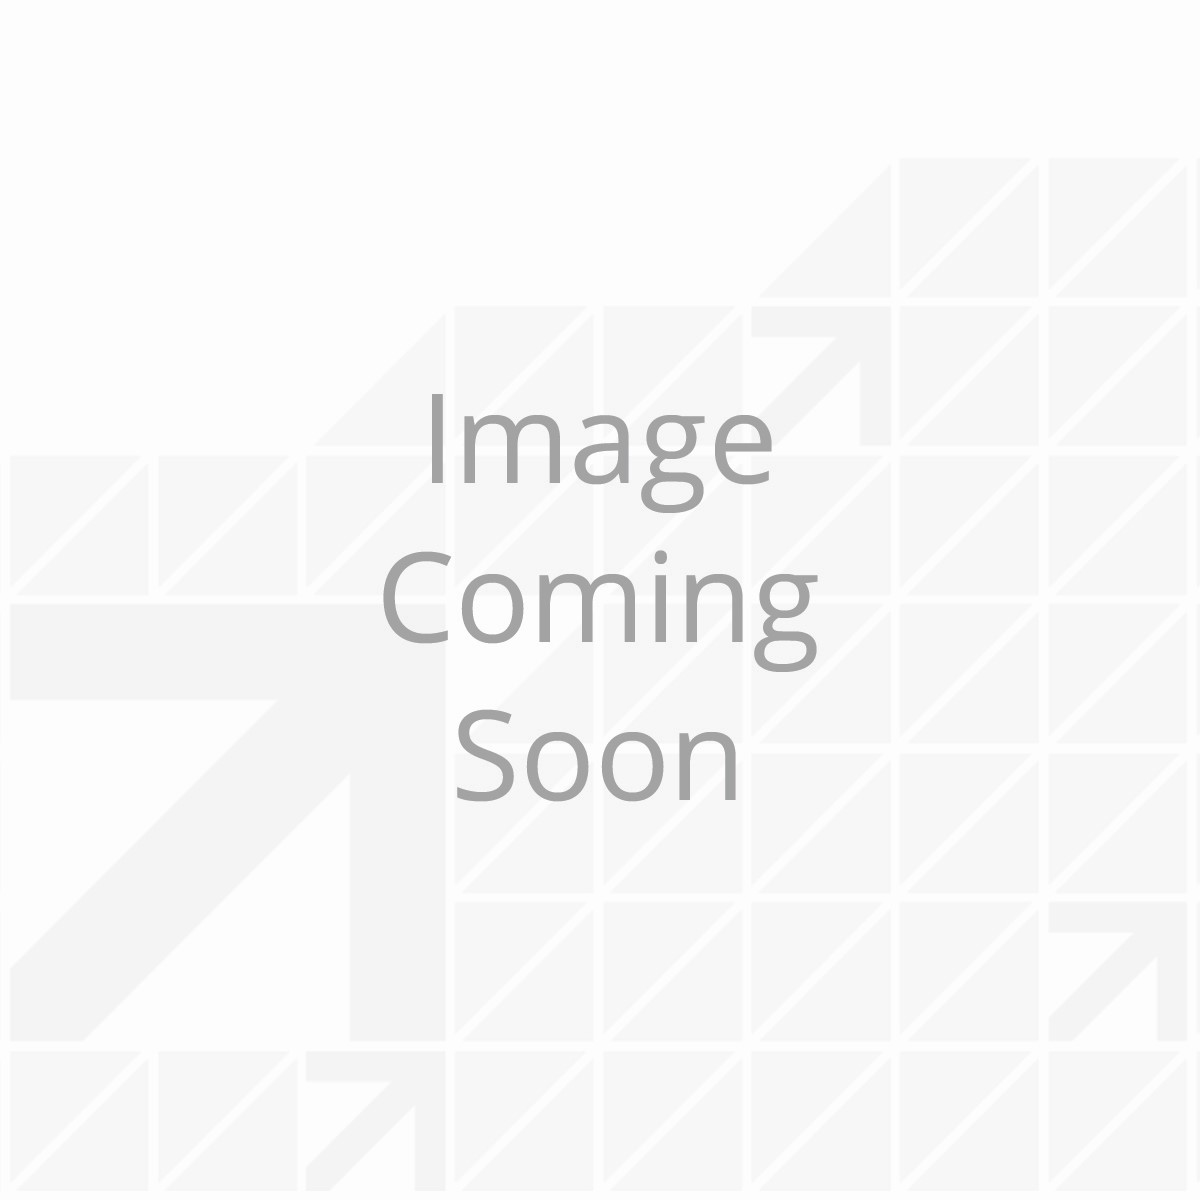 Axle Hardware Replacement Kit -3,500 lbs.